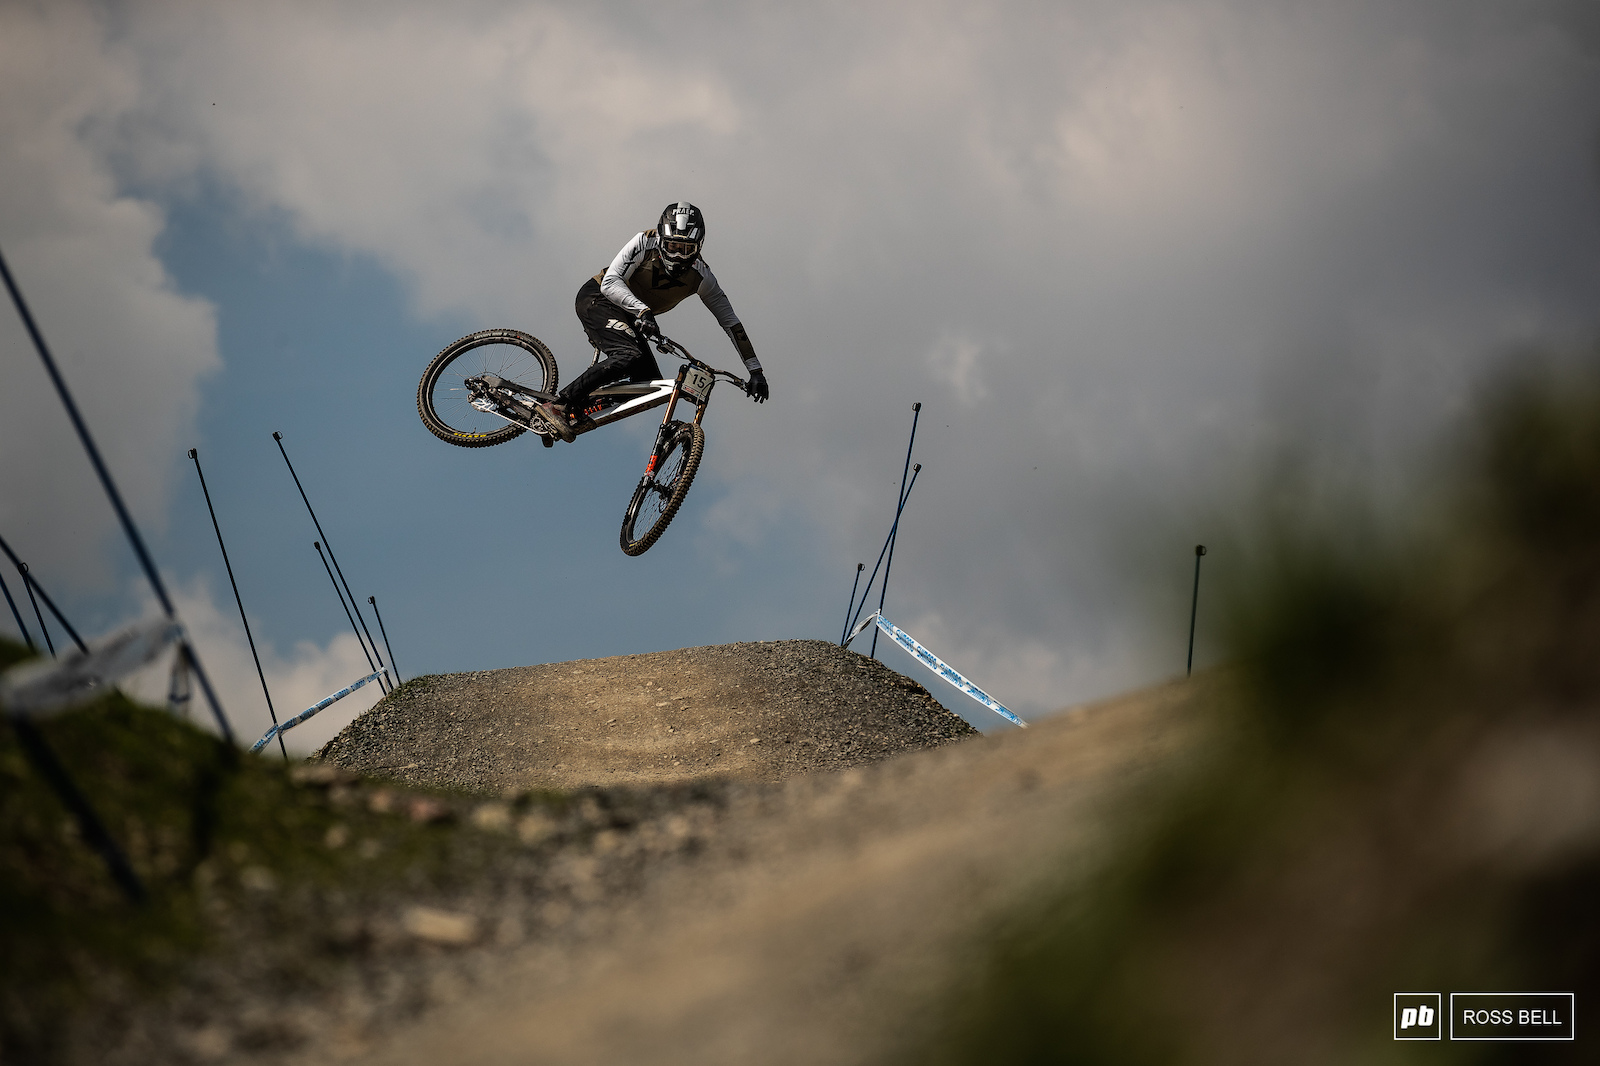 Dakotah Norton throwing style over one feature...